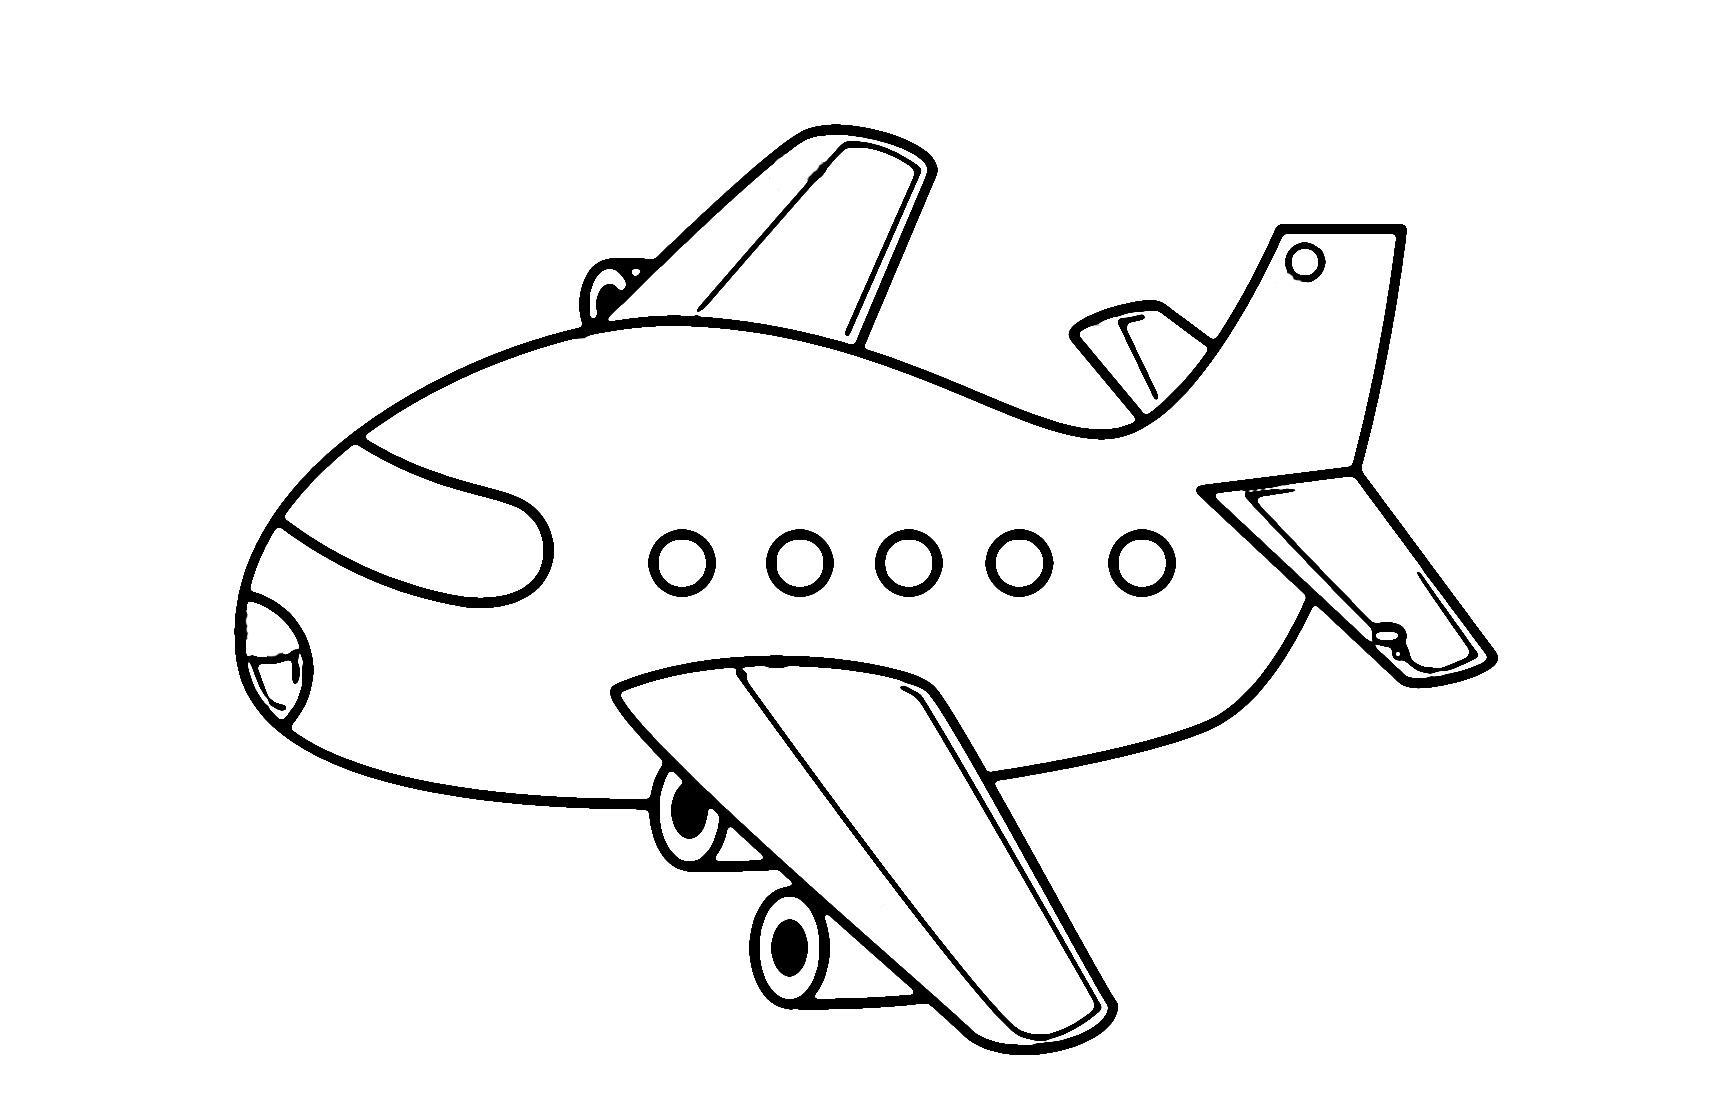 coloring jet 10 free airplane coloring pages for kids jet coloring